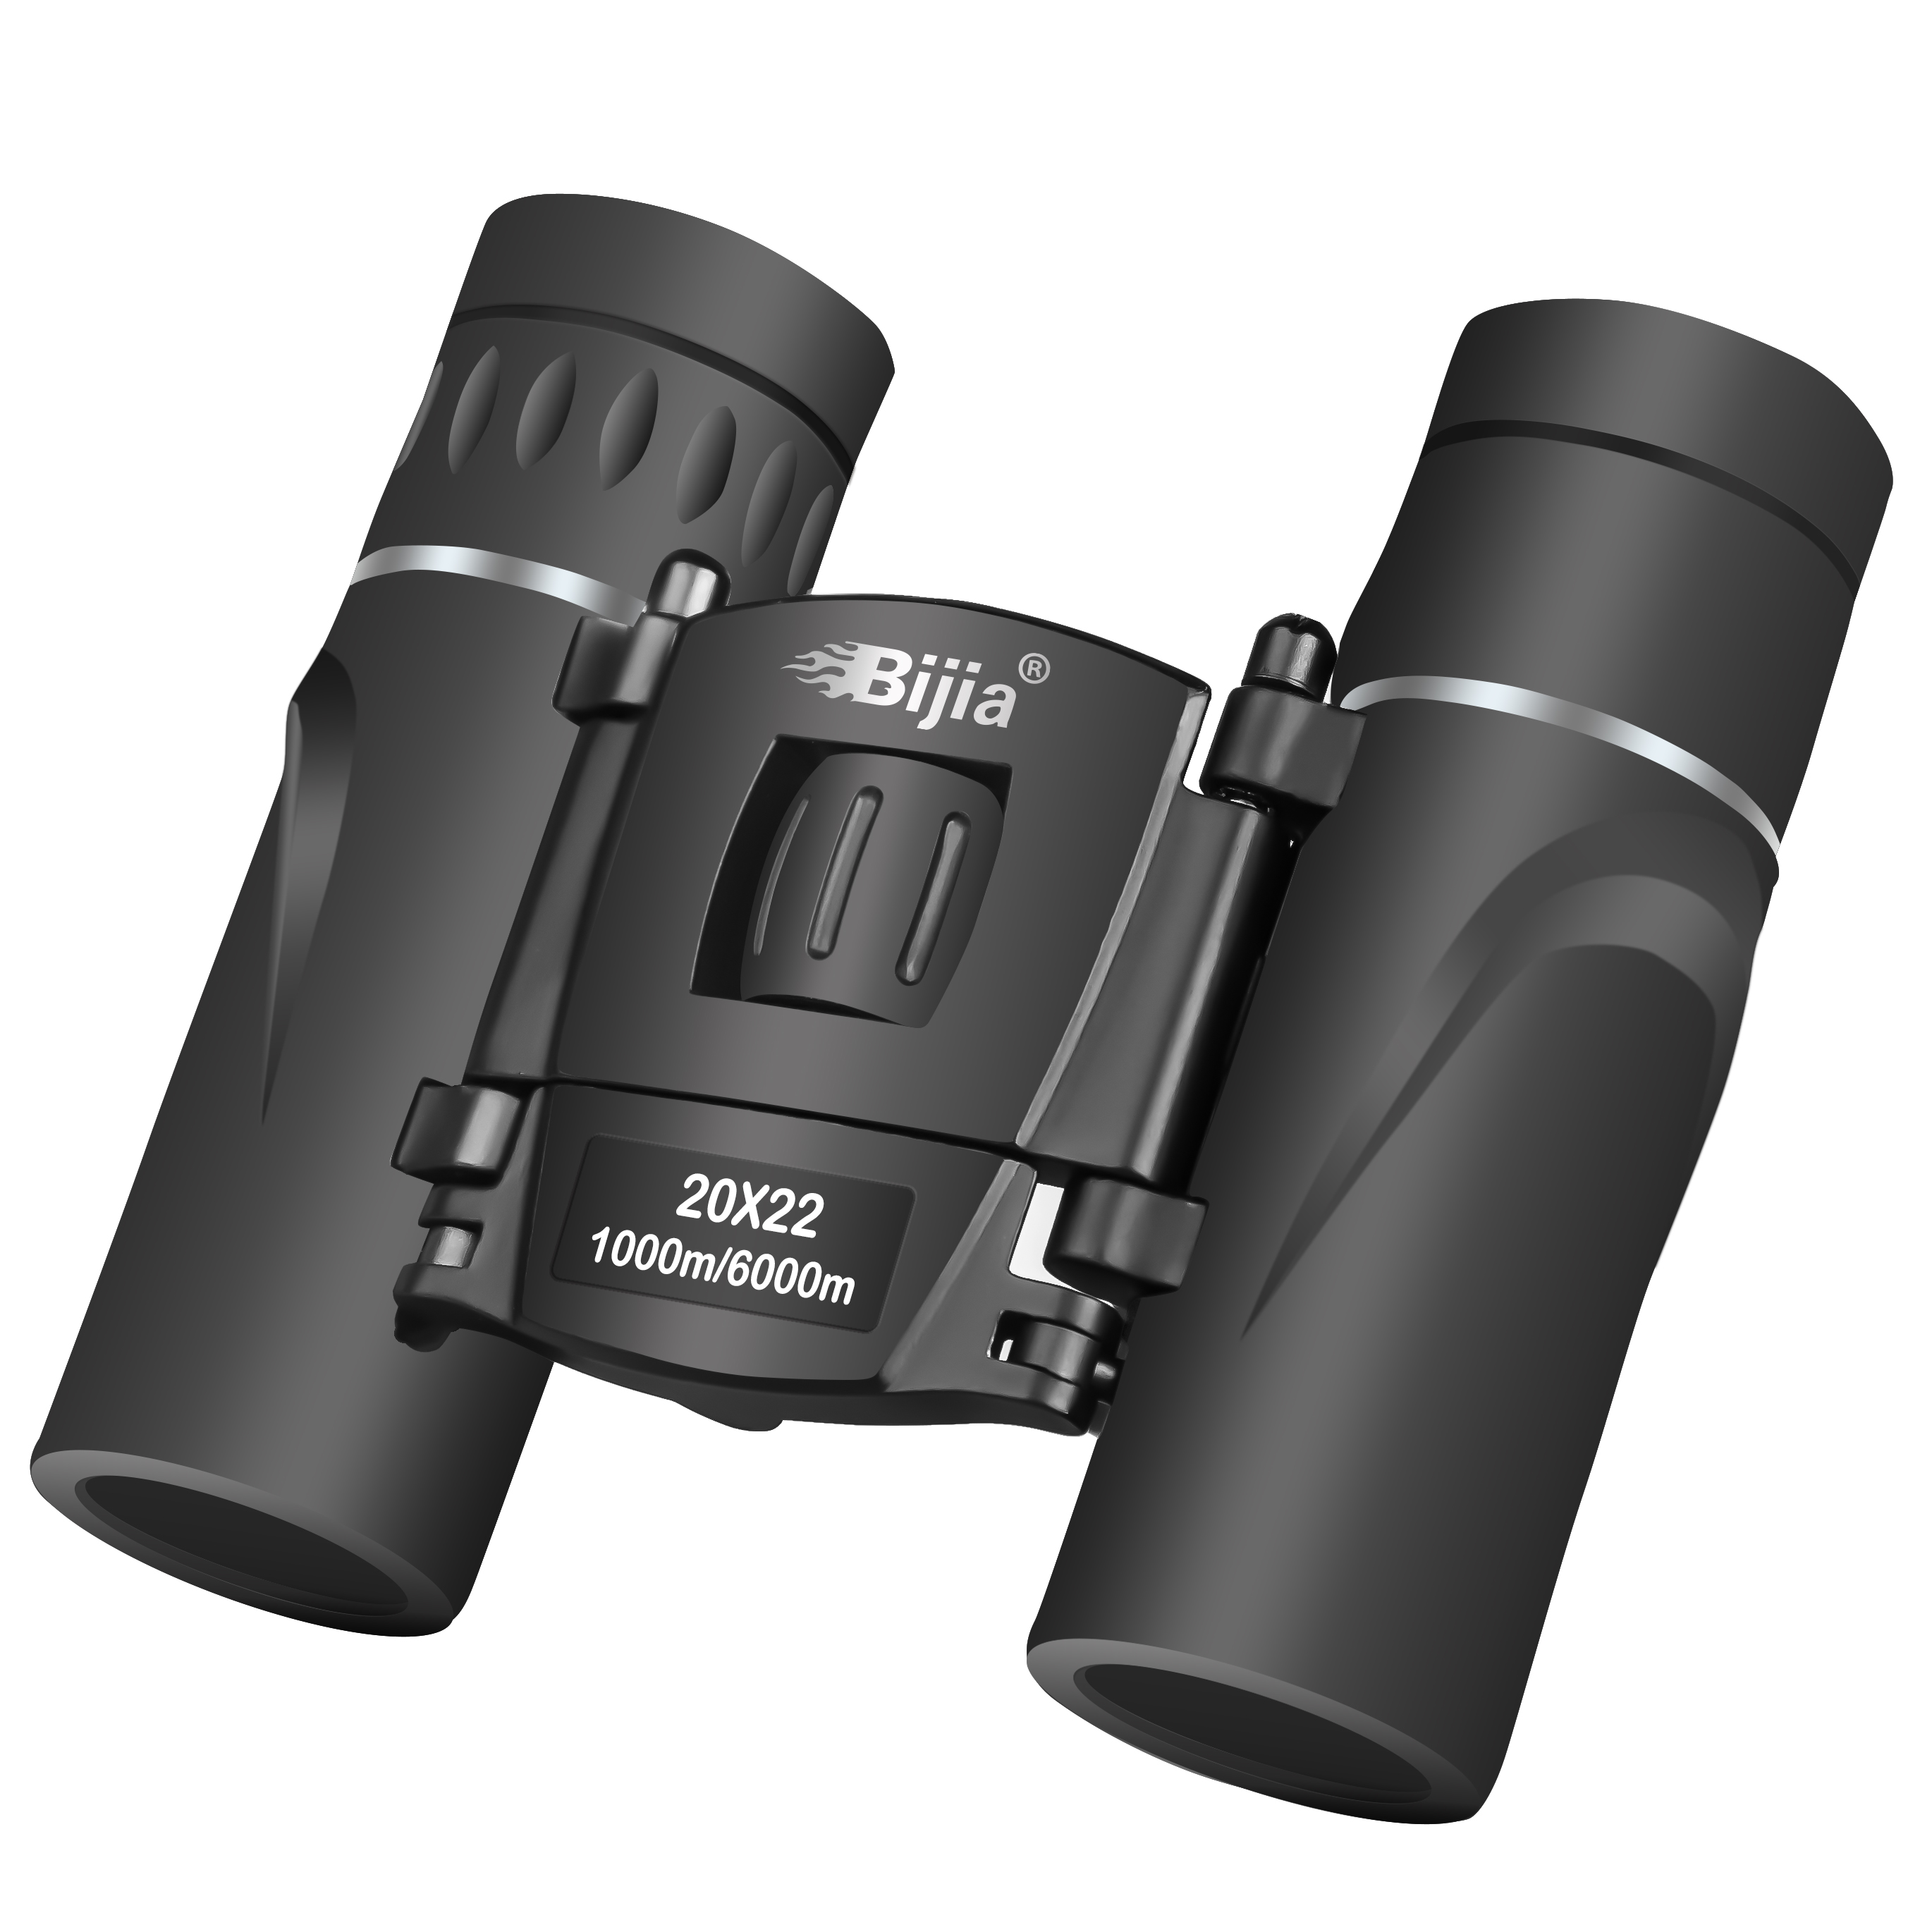 Image 3 - BIJIA HD 20x22 Binoculars Professional Hunting Mini Folding Pocket Telescope BAK4 FMC Optics High Quality Vision Outdoor Gifts-in Monocular/Binoculars from Sports & Entertainment